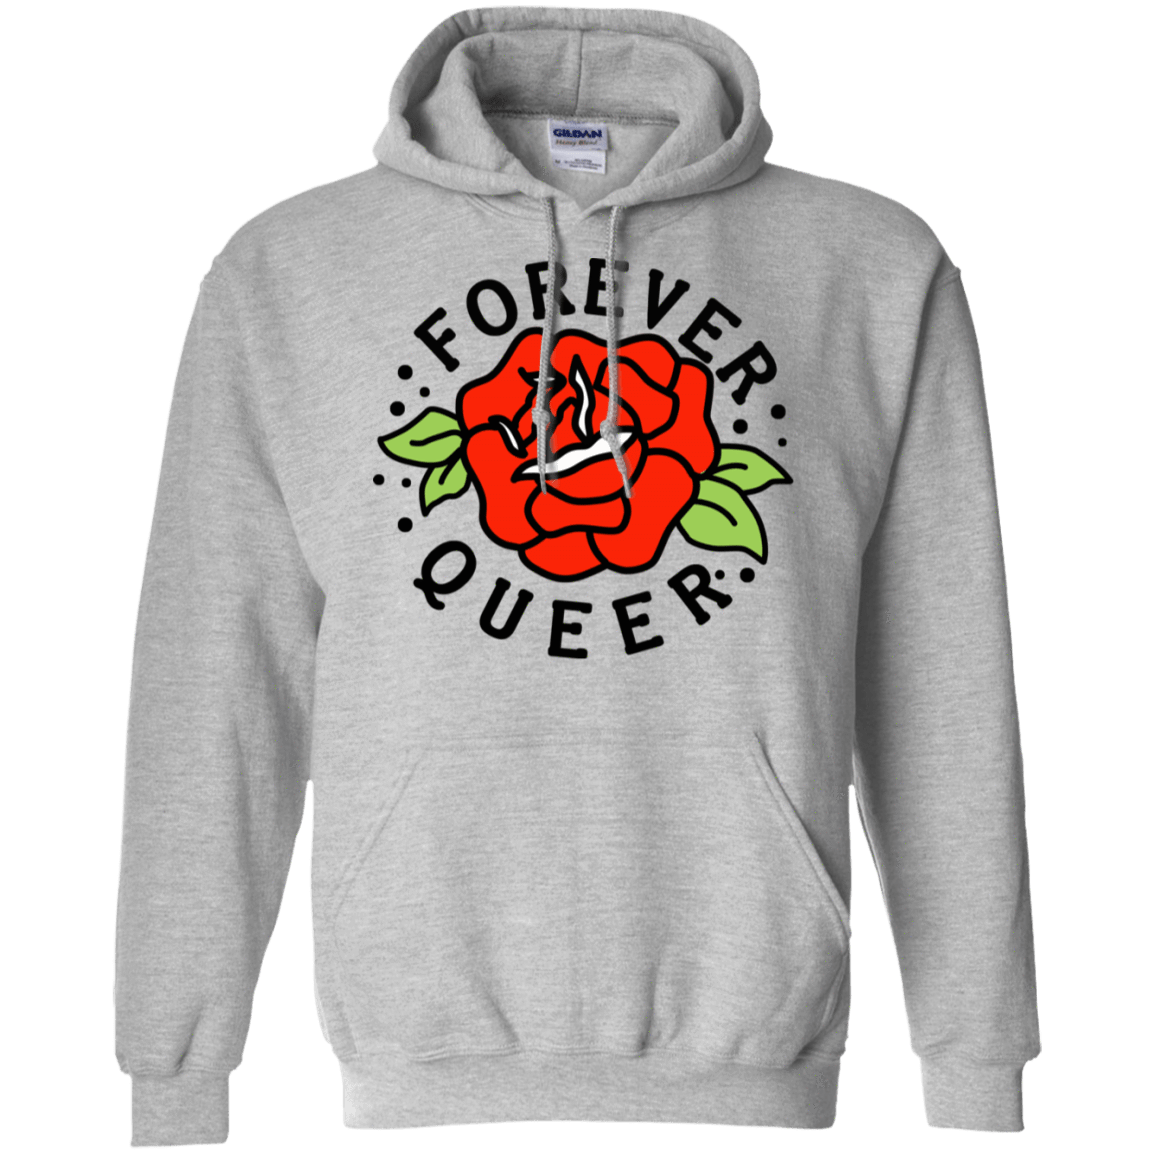 Forever Queer Rose 541-4741-73547903-23111 - Tee Ript